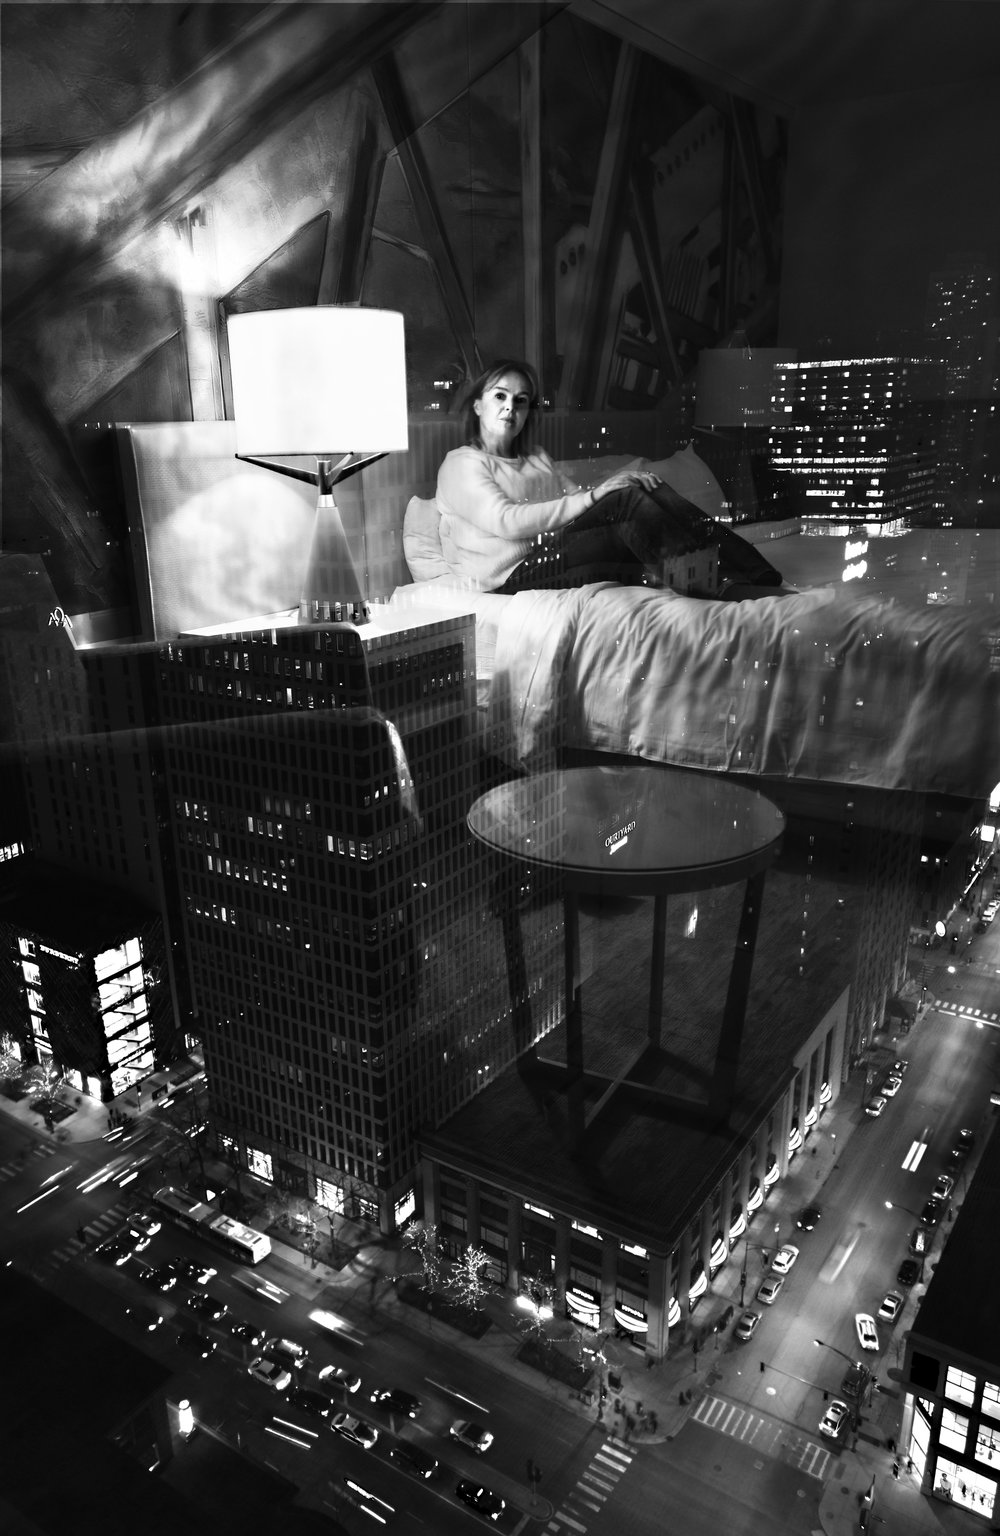 SPA 2017 Exhibition: Lonely in Chicago ,   34 x 43 cm (framed)  Digital image printed on Canson Baryta paper  £140